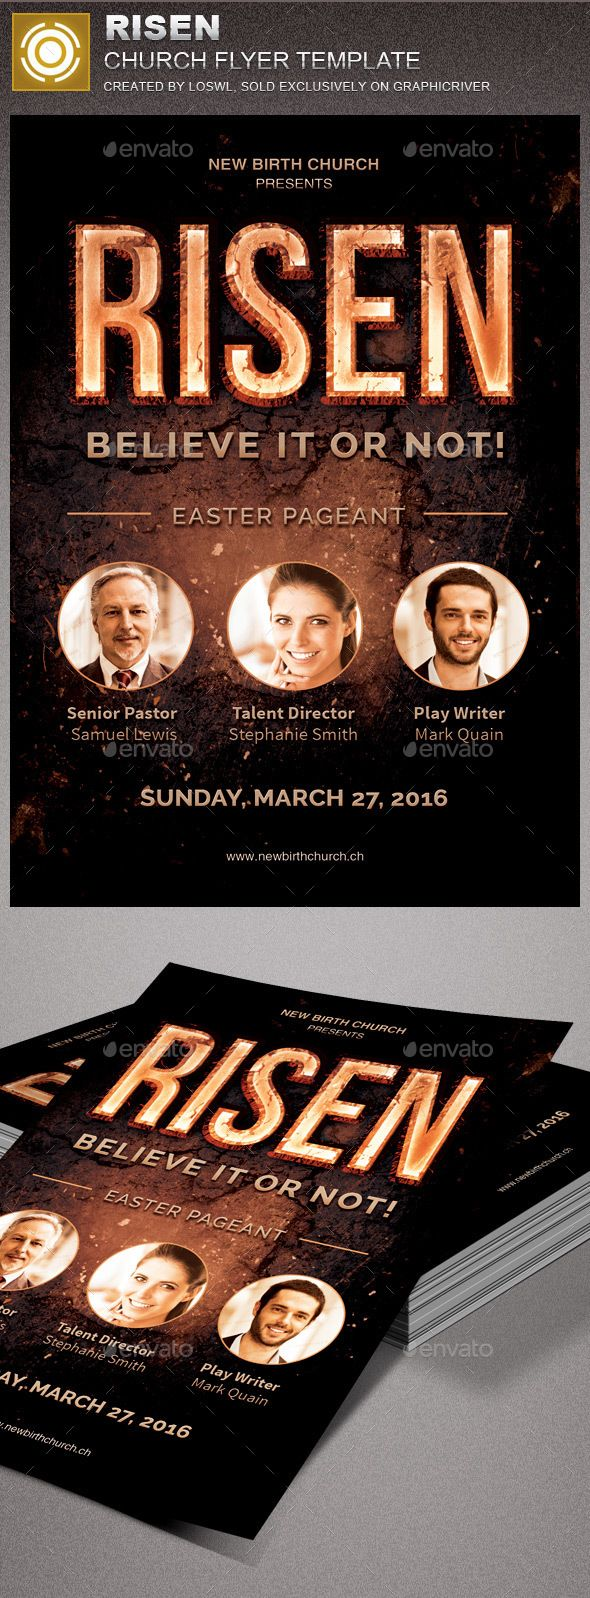 best images about church marketing flyer templates risen church flyer template